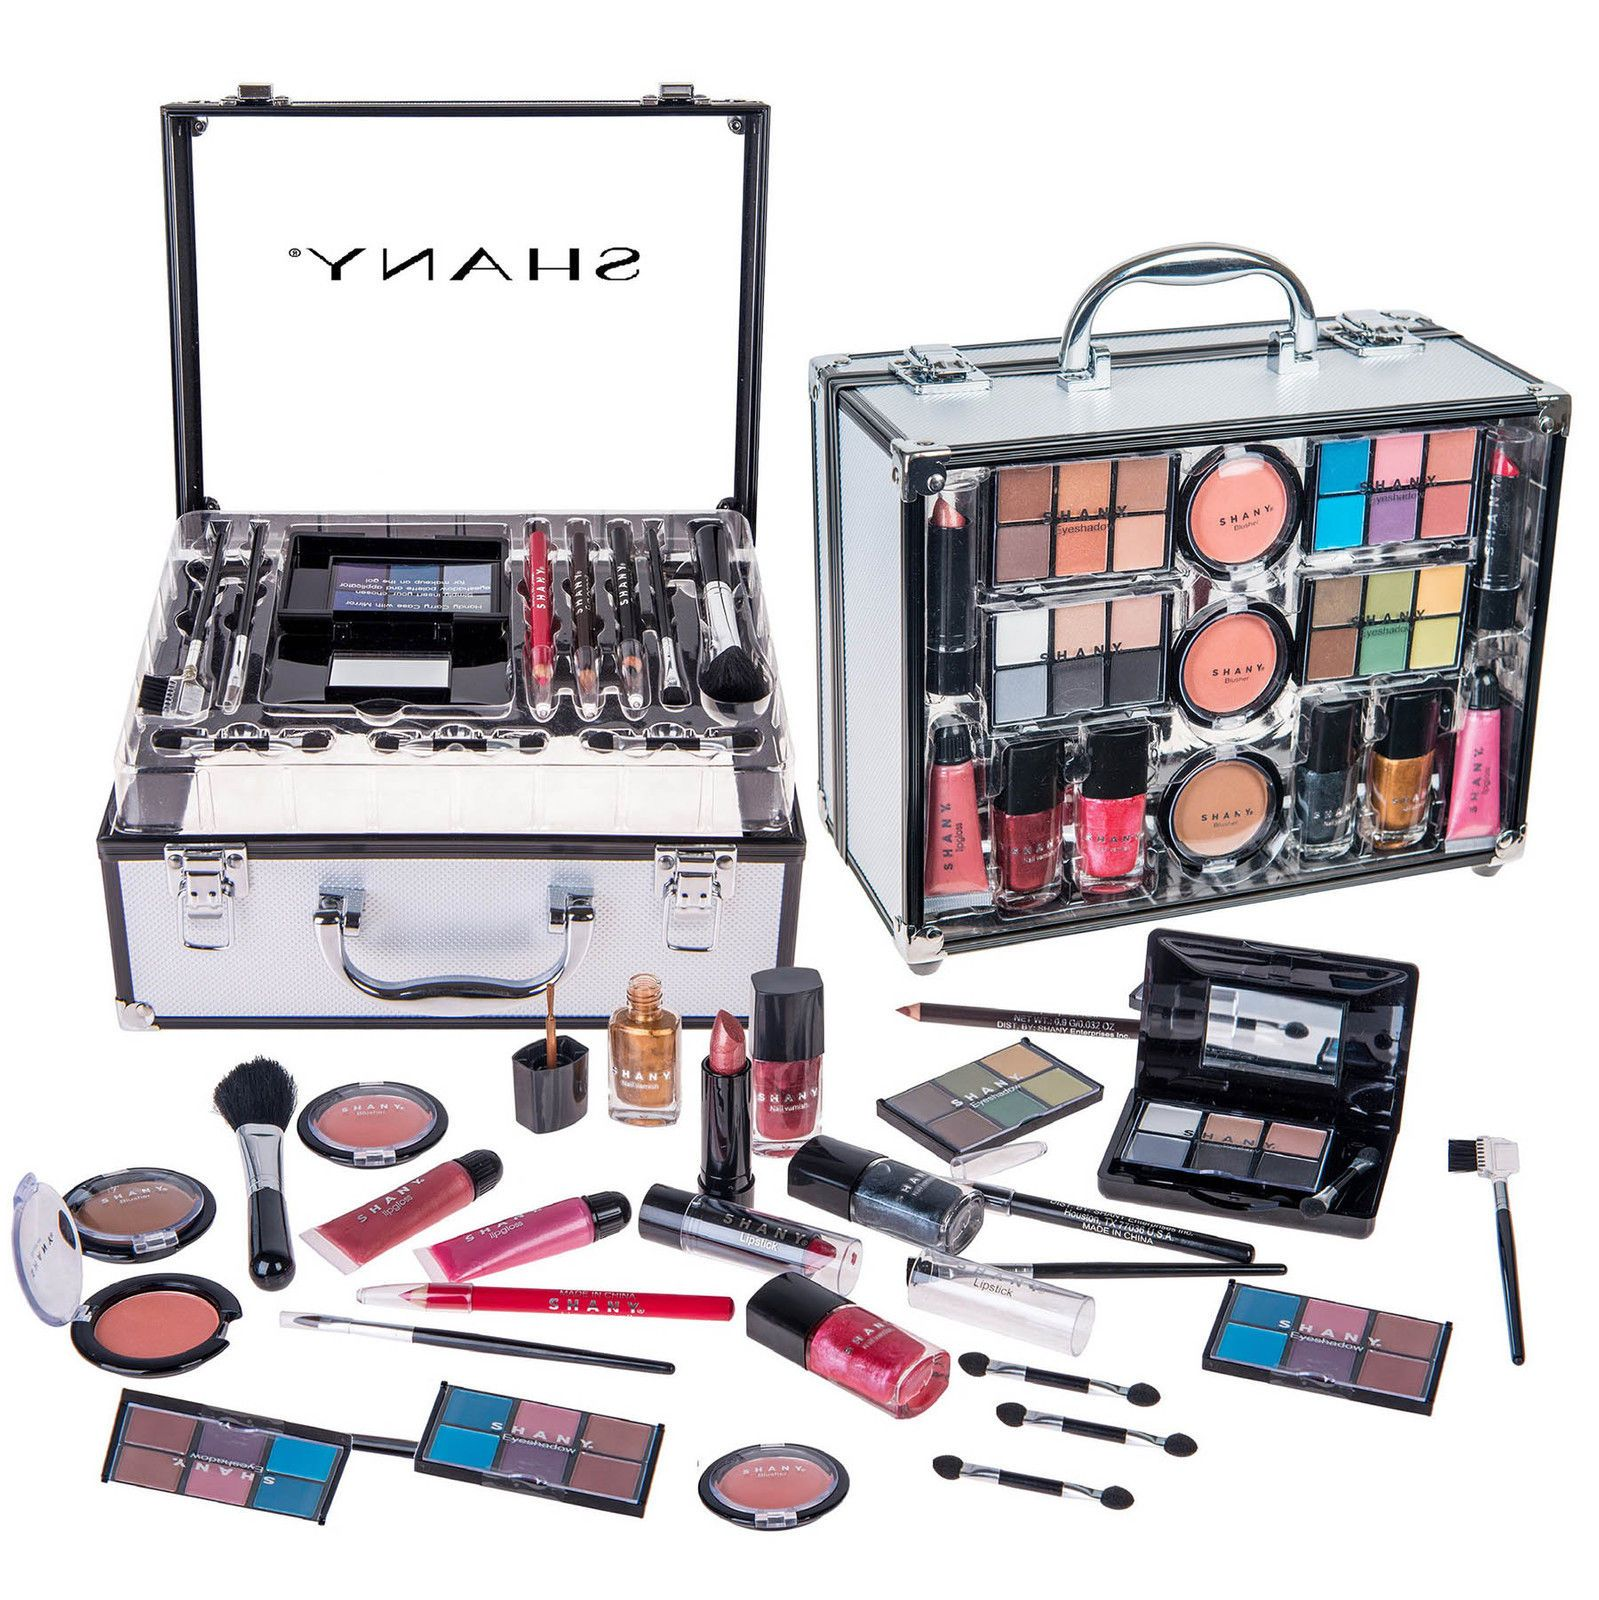 Shany All In One Makeup Kit Eye Shadow Palette/Blushes